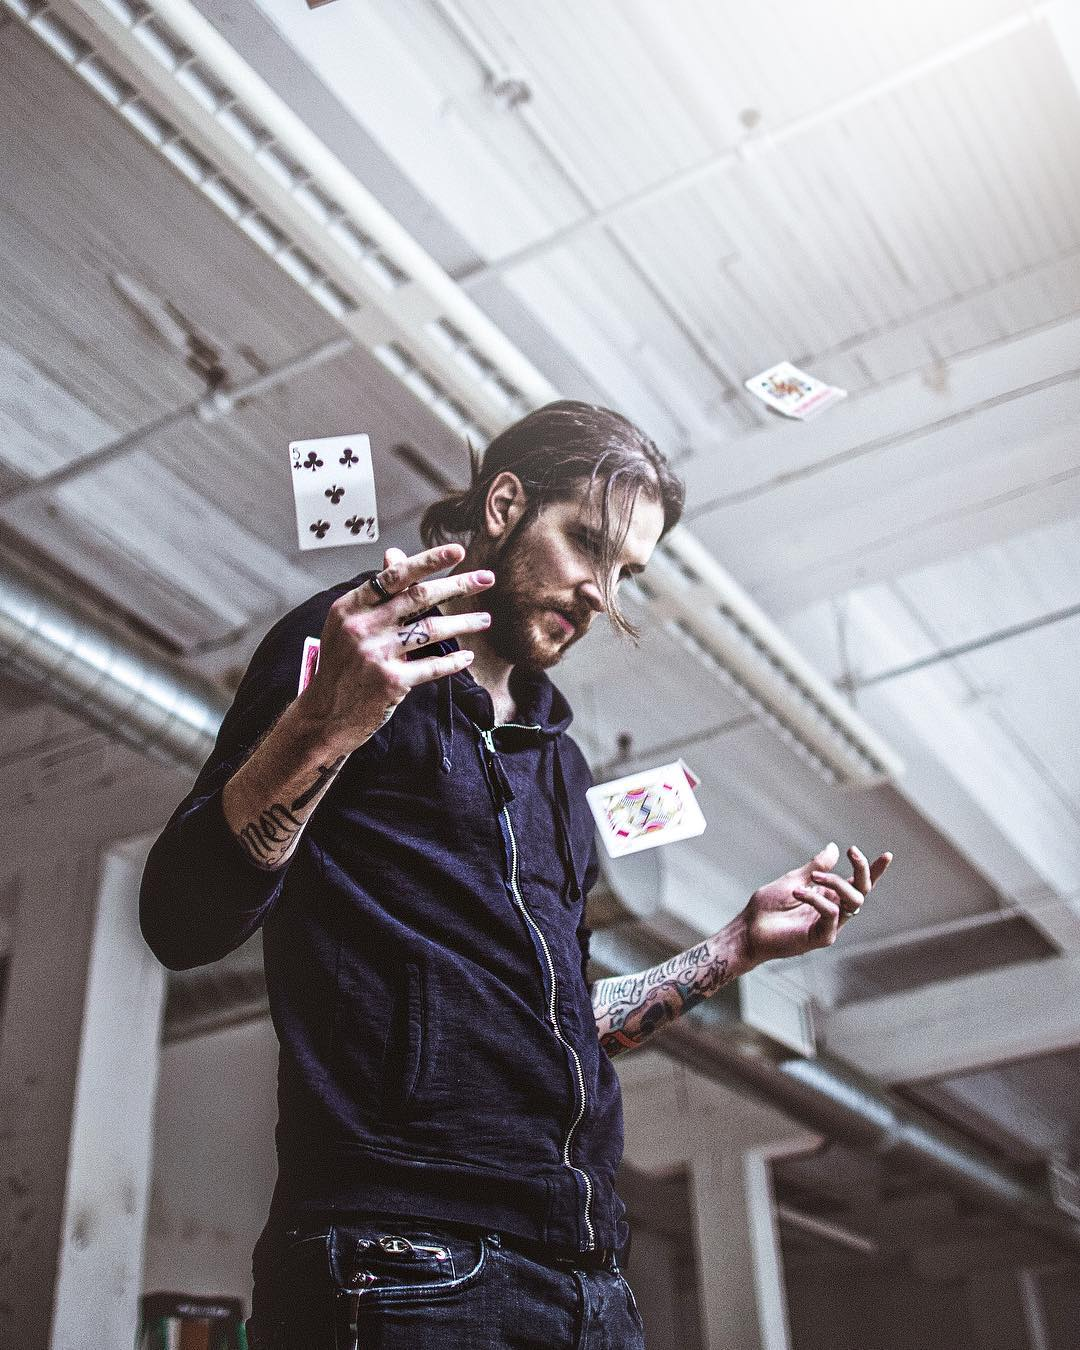 huge lawn chair better posture how much money peter mckinnon makes on youtube - net worth naibuzz